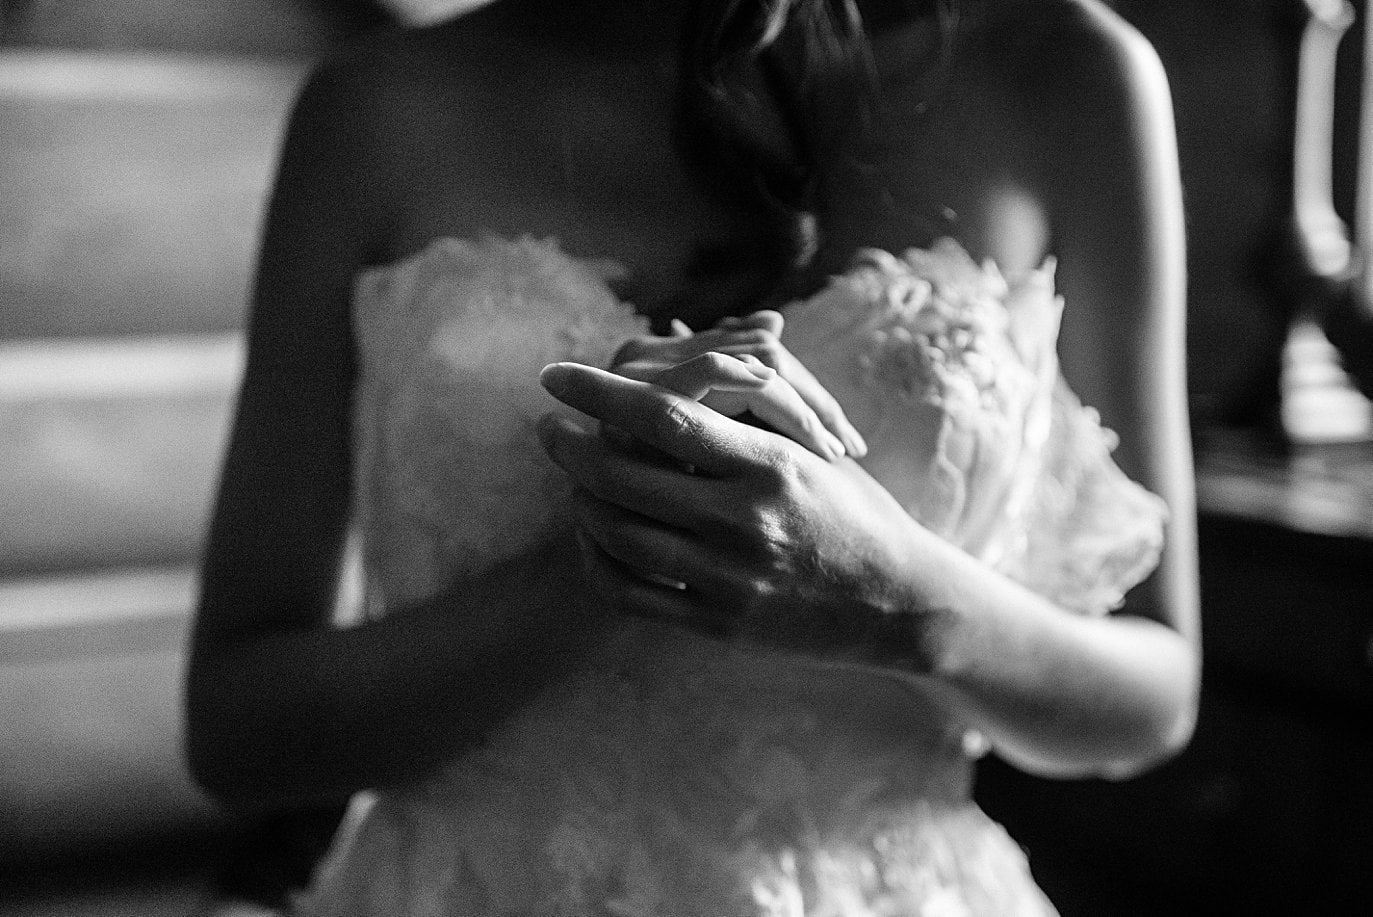 bride clutches hands as she gets laced into wedding dresses at intimate Grand Lake wedding by Grand Lake wedding photographer Jennie Crate